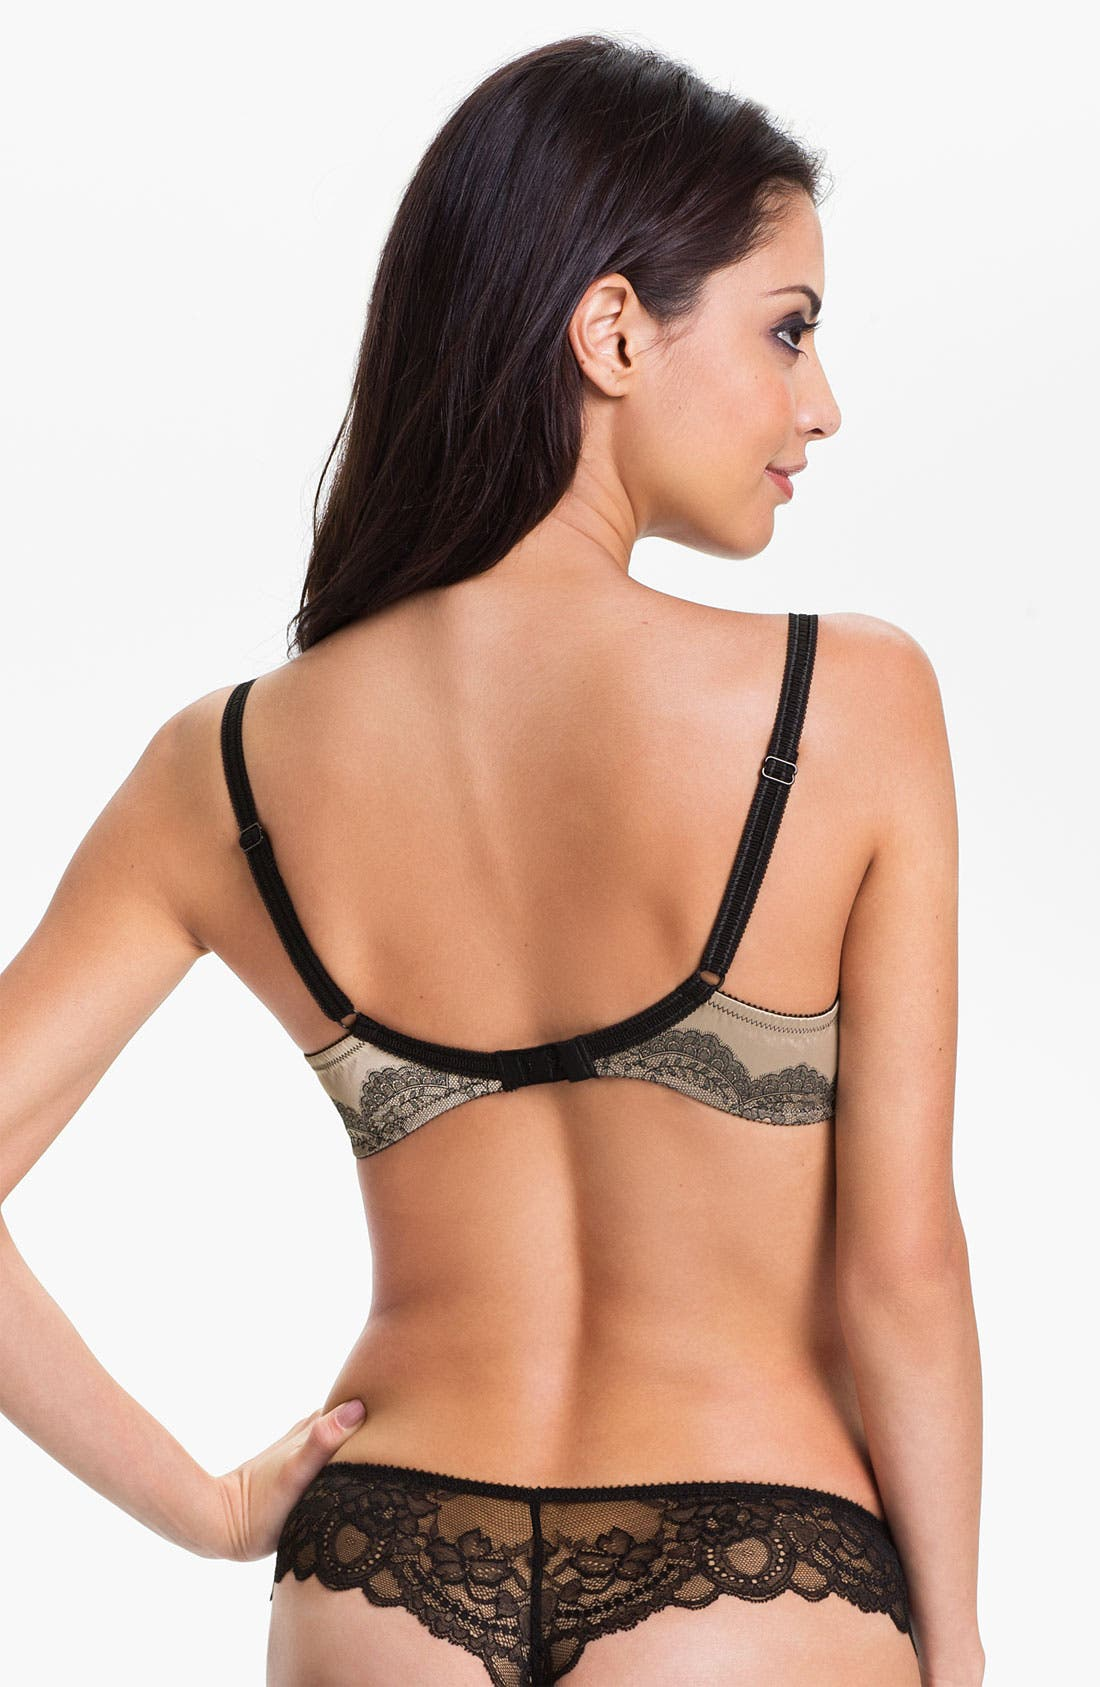 'Paris Paris' Underwire Demi Bra,                             Alternate thumbnail 4, color,                             010